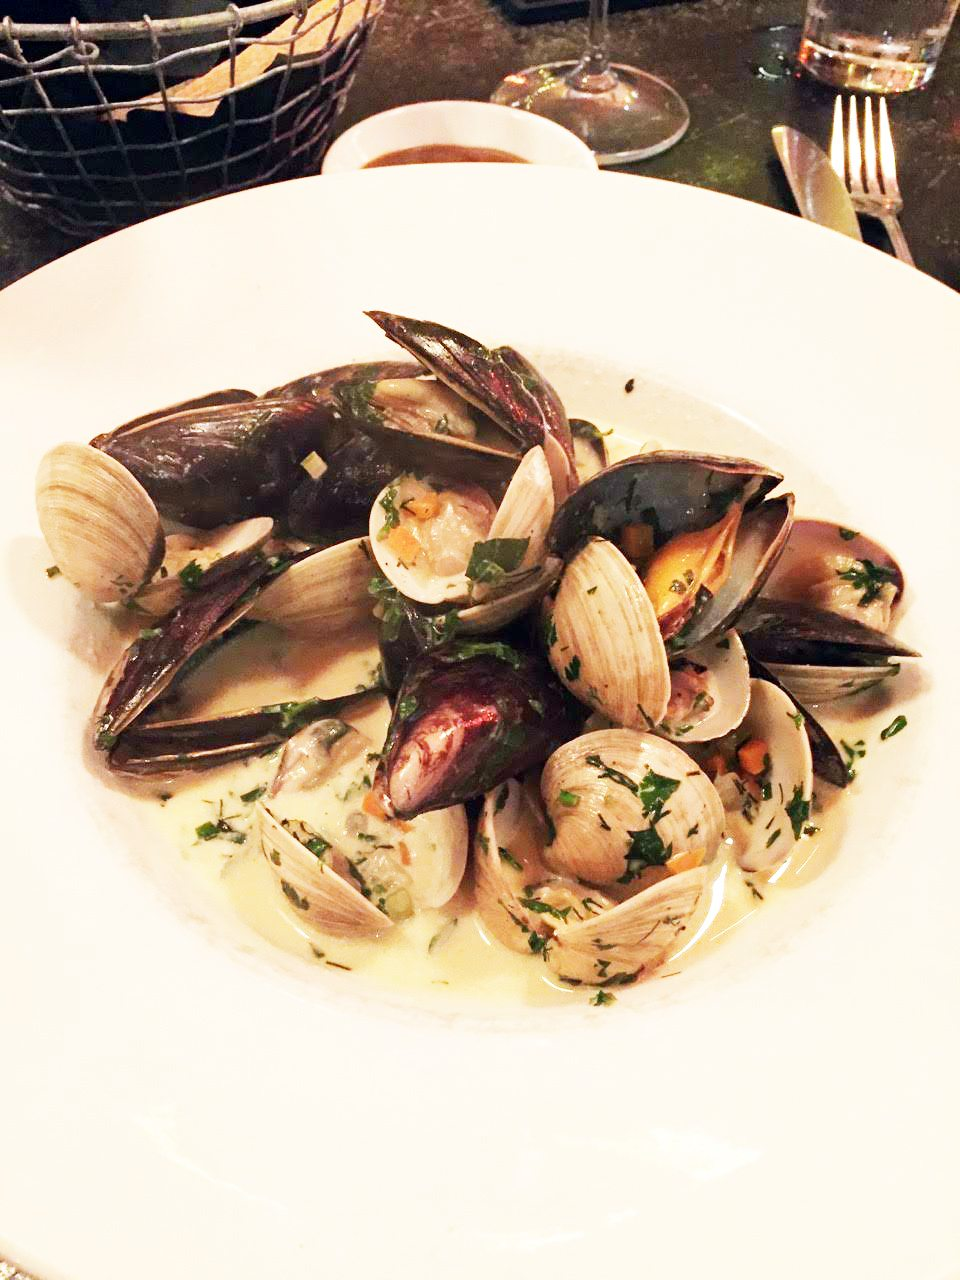 Das Lokal's bowl of mussels and clams